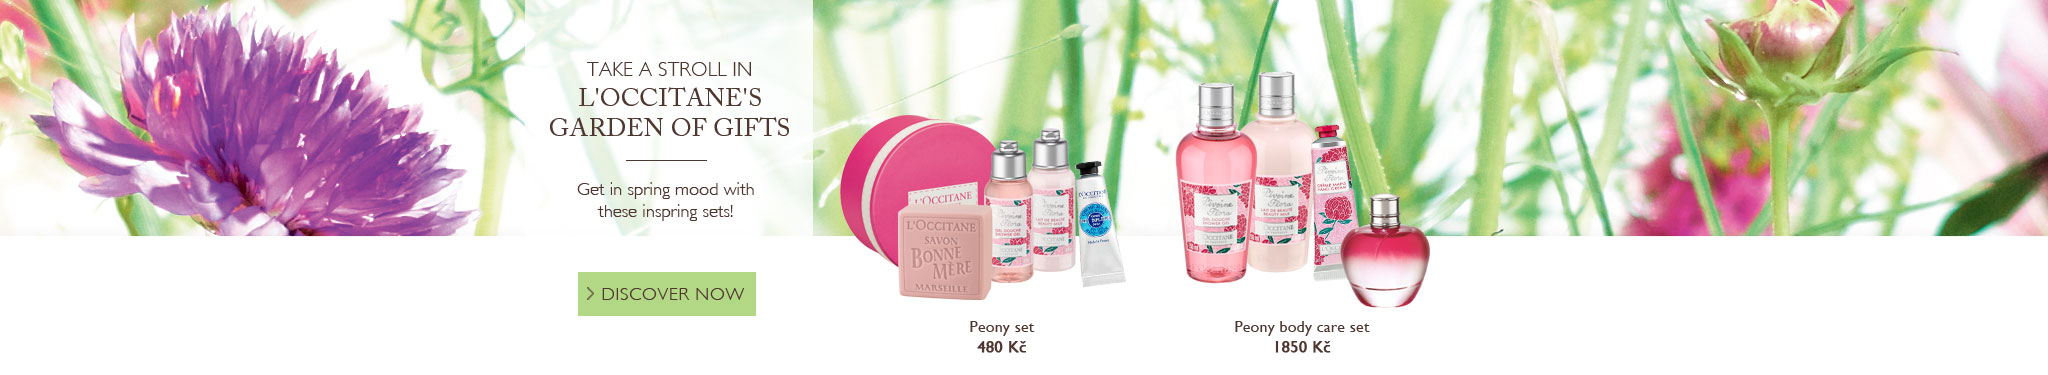 Take a stroll in L'OCCITANE's garden of gifts